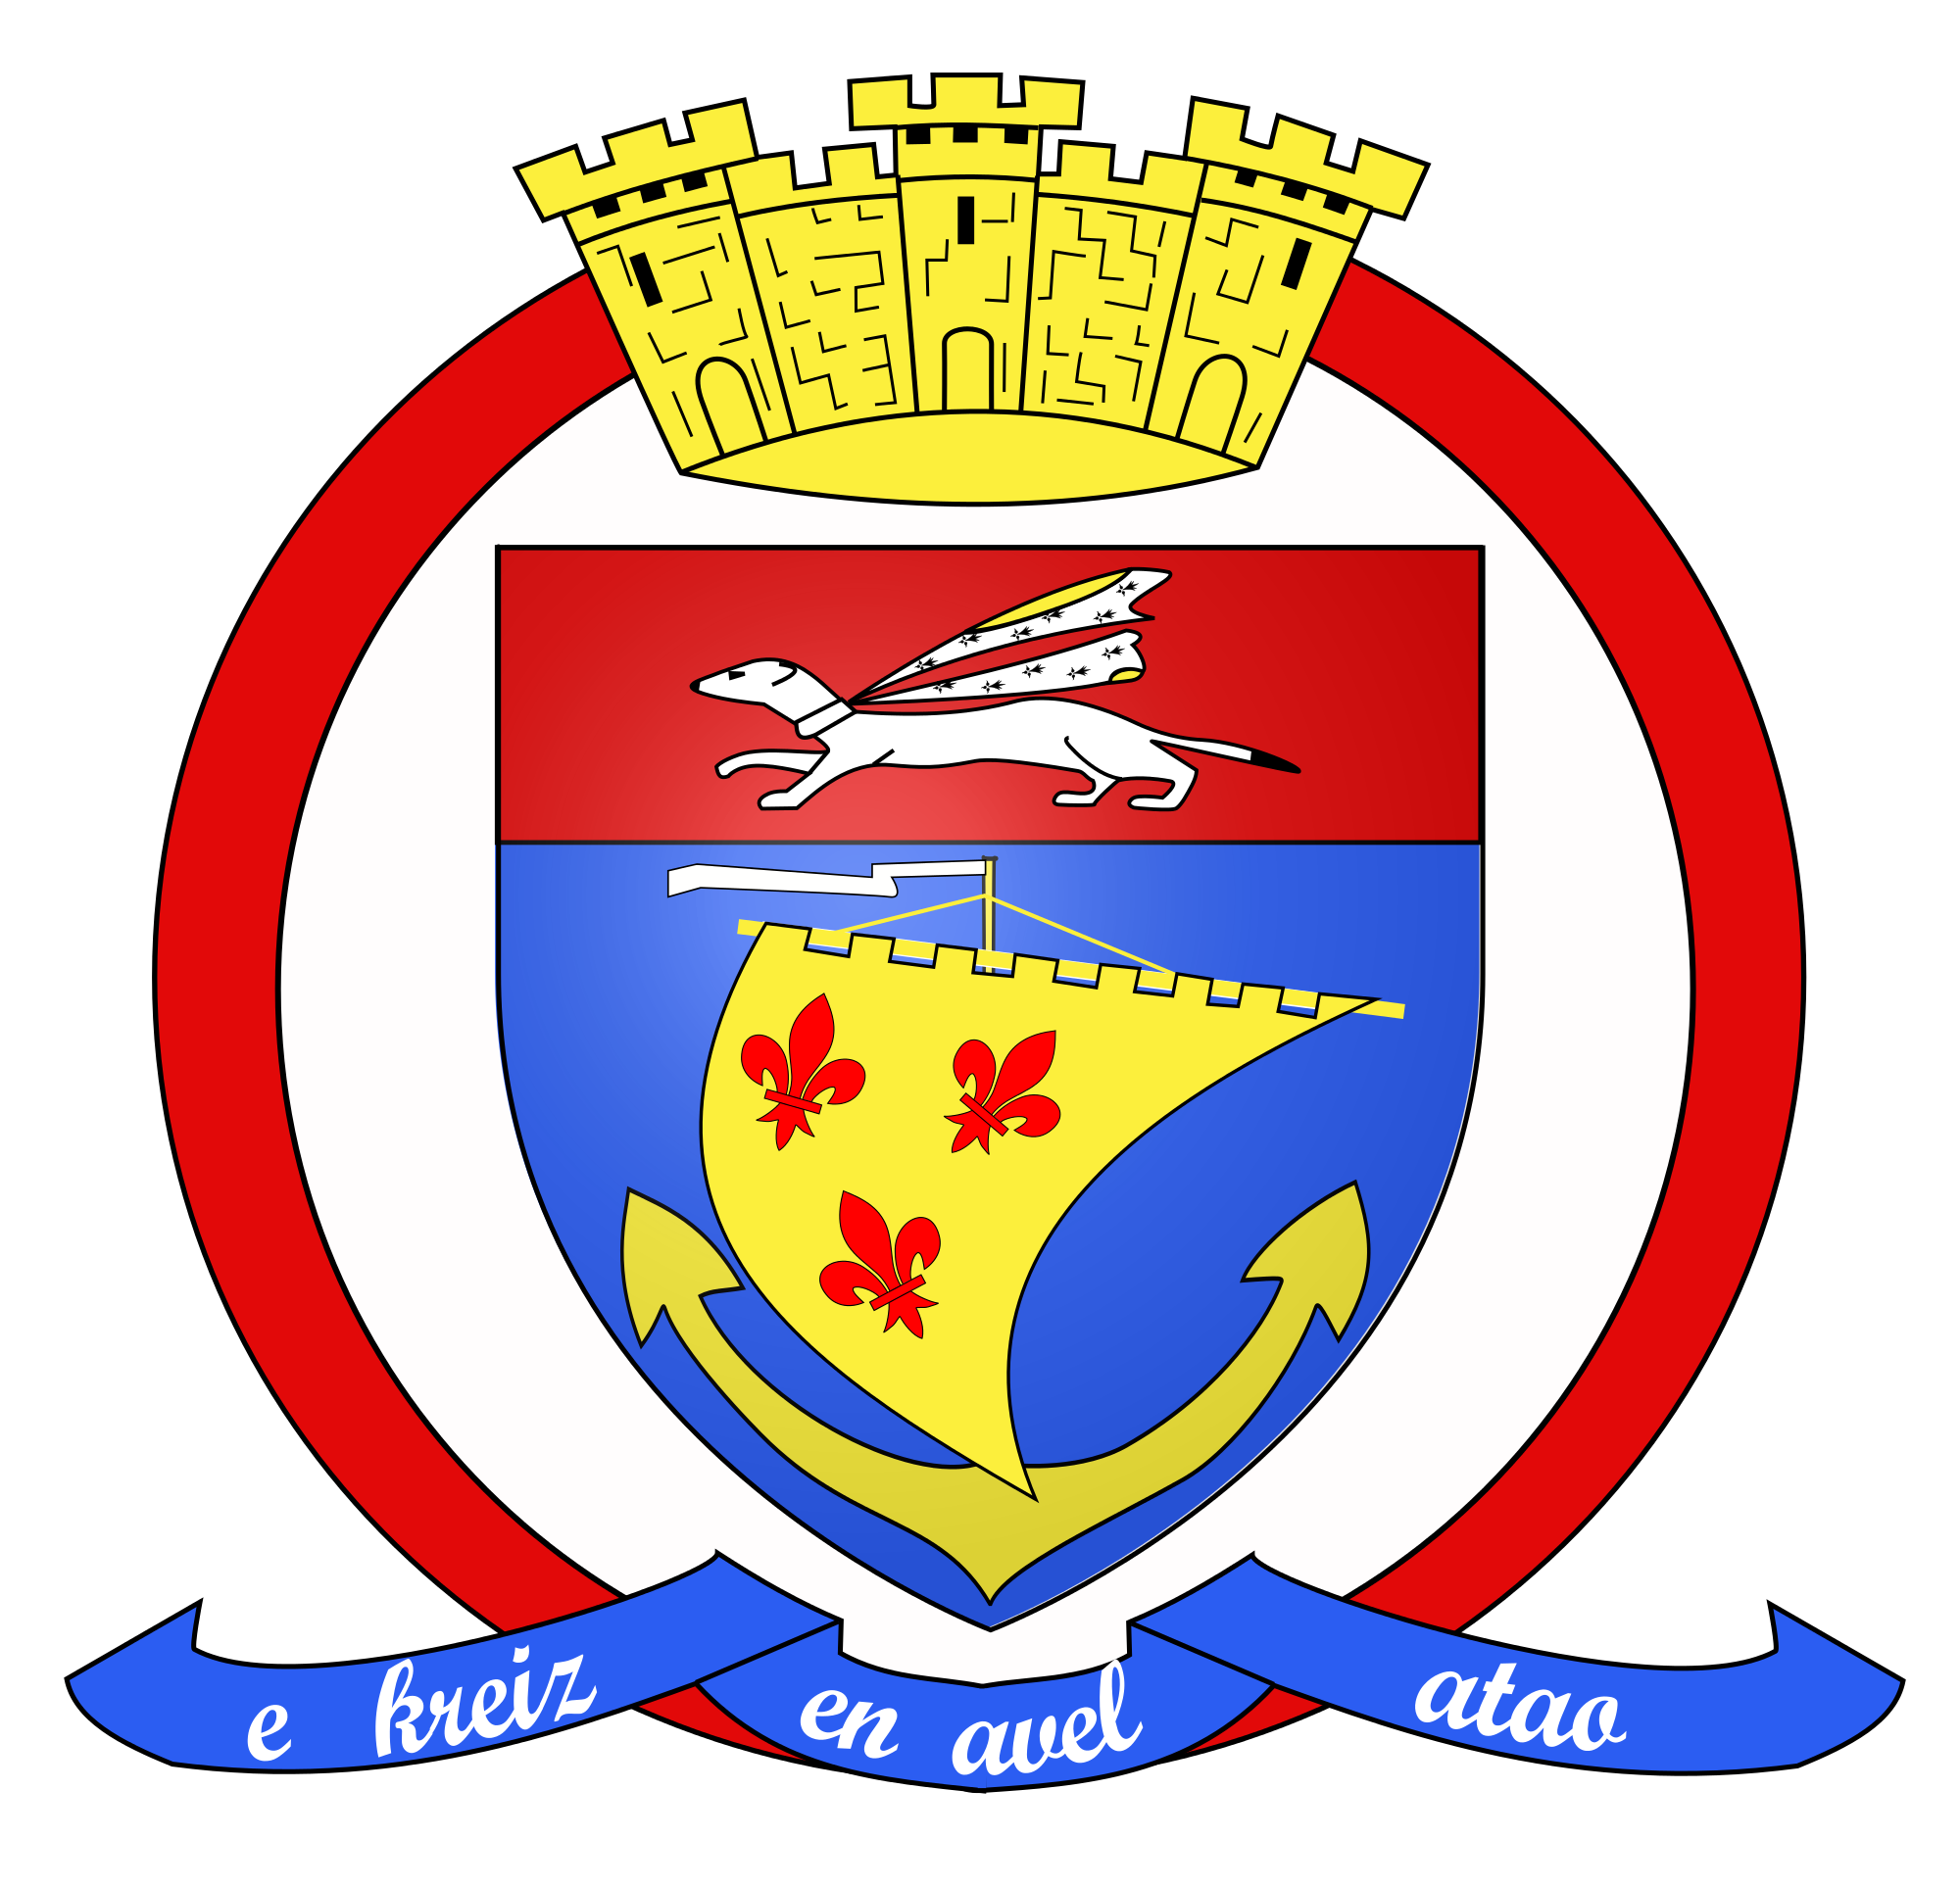 File:Armoiries Quiberon.svg.